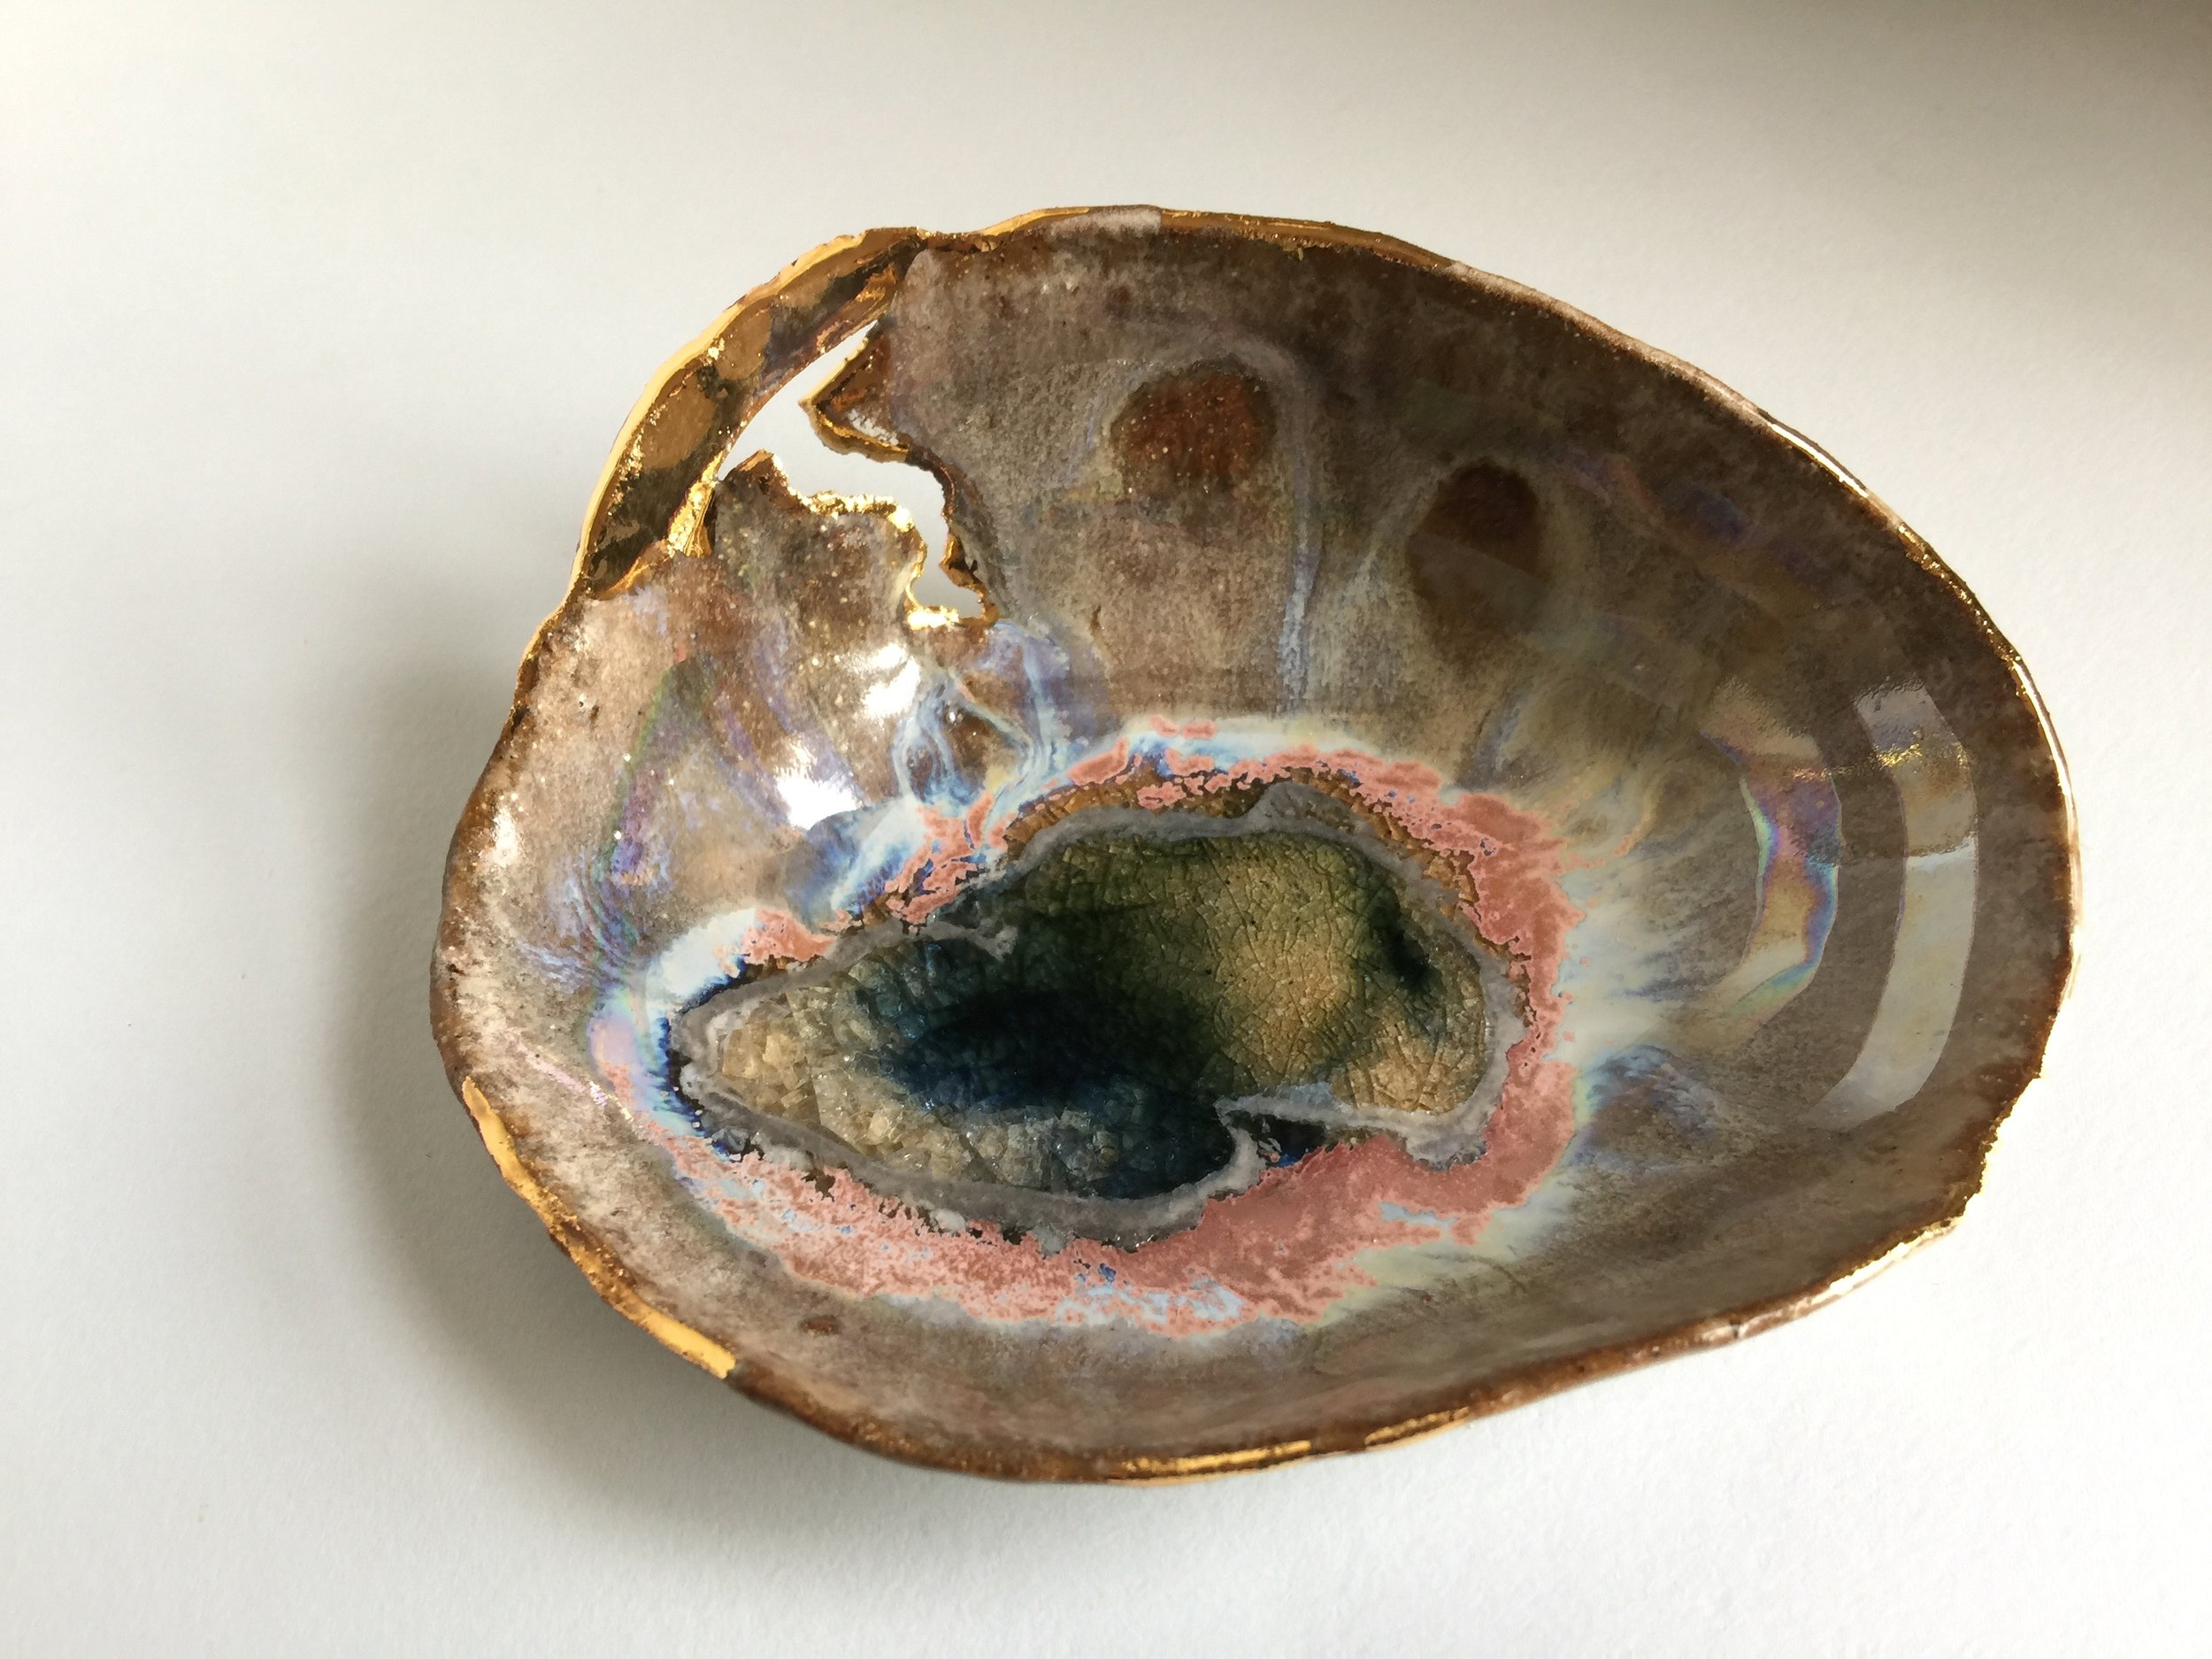 15 Small Dilapidated Iceland Dish with Gold - Blue Lagoon.jpg